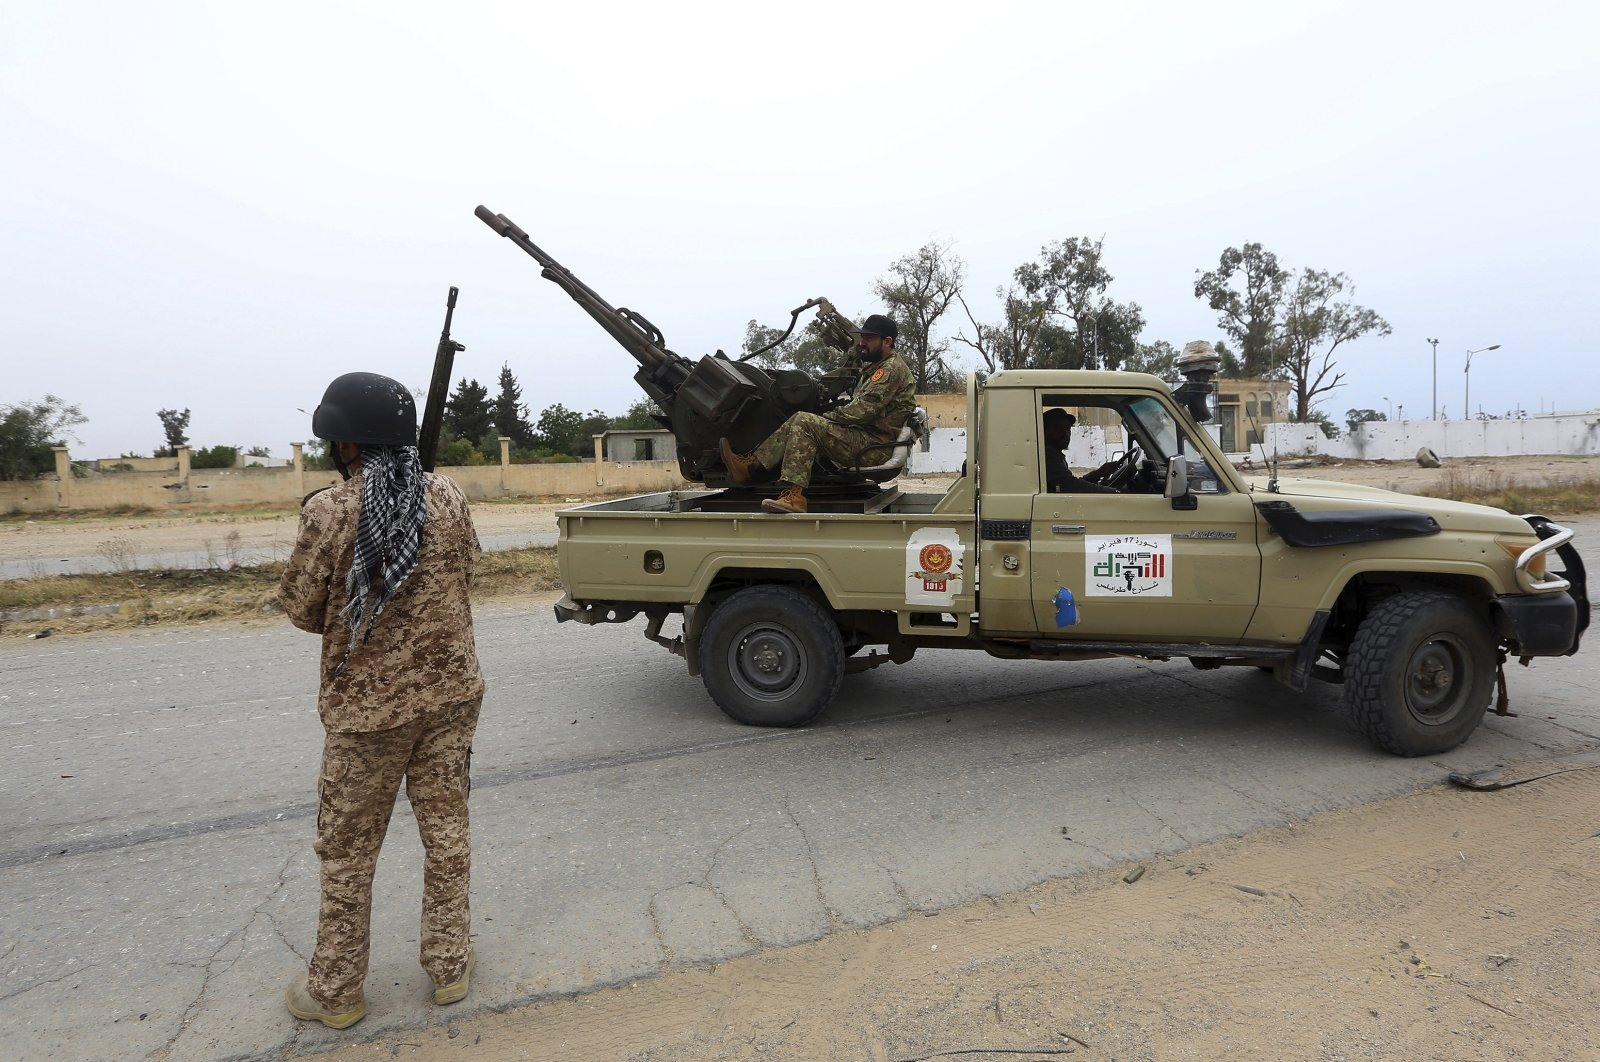 Tripoli government forces clash with forces led by putschist Gen. Khalifa Hifter, south of the capital Tripoli, Libya, May 21, 2019. (AP Photo)